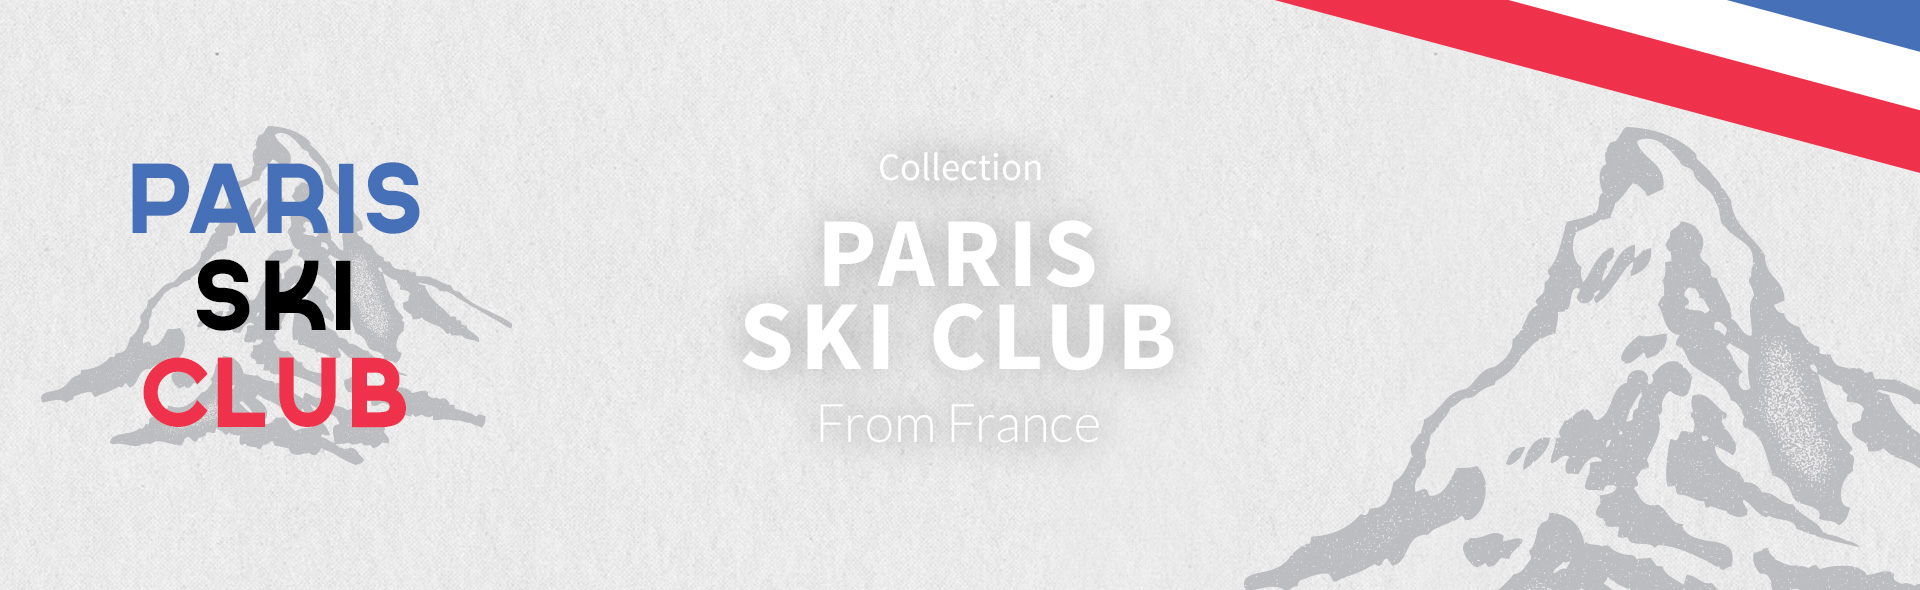 Collection Paris Ski Club